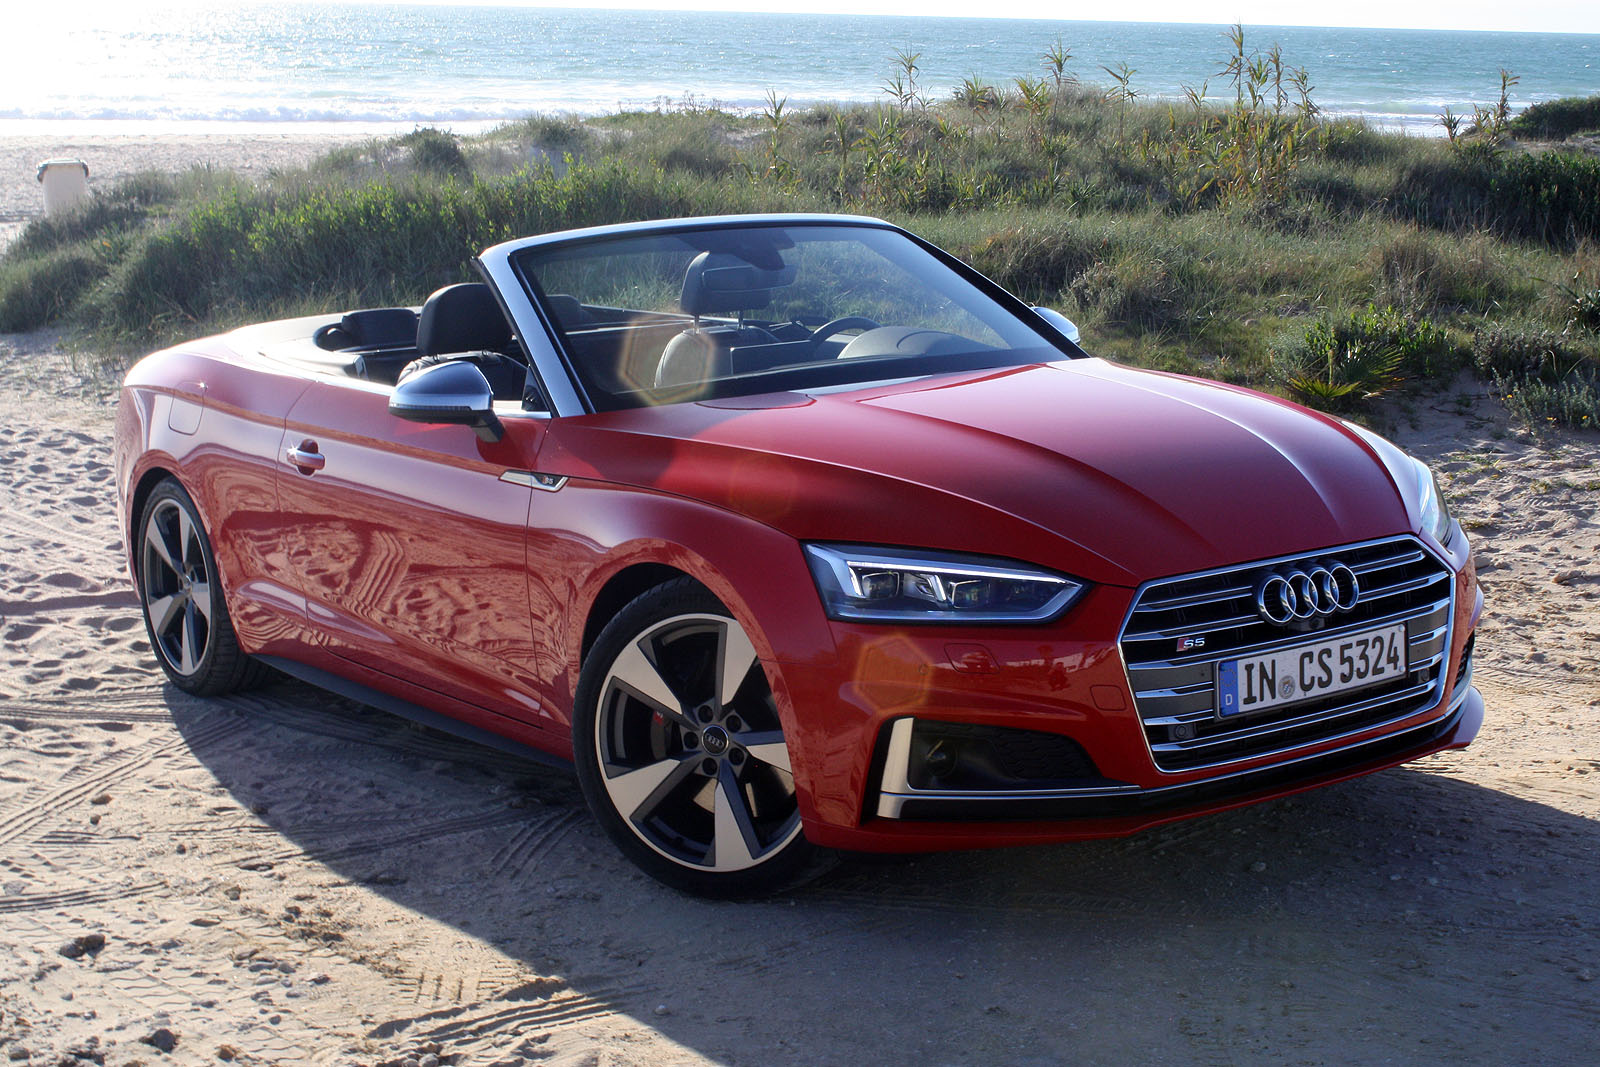 cars blue ara effect tfsi crystal a wallpaper front images convertibles cabriolet quattro cabrio audi